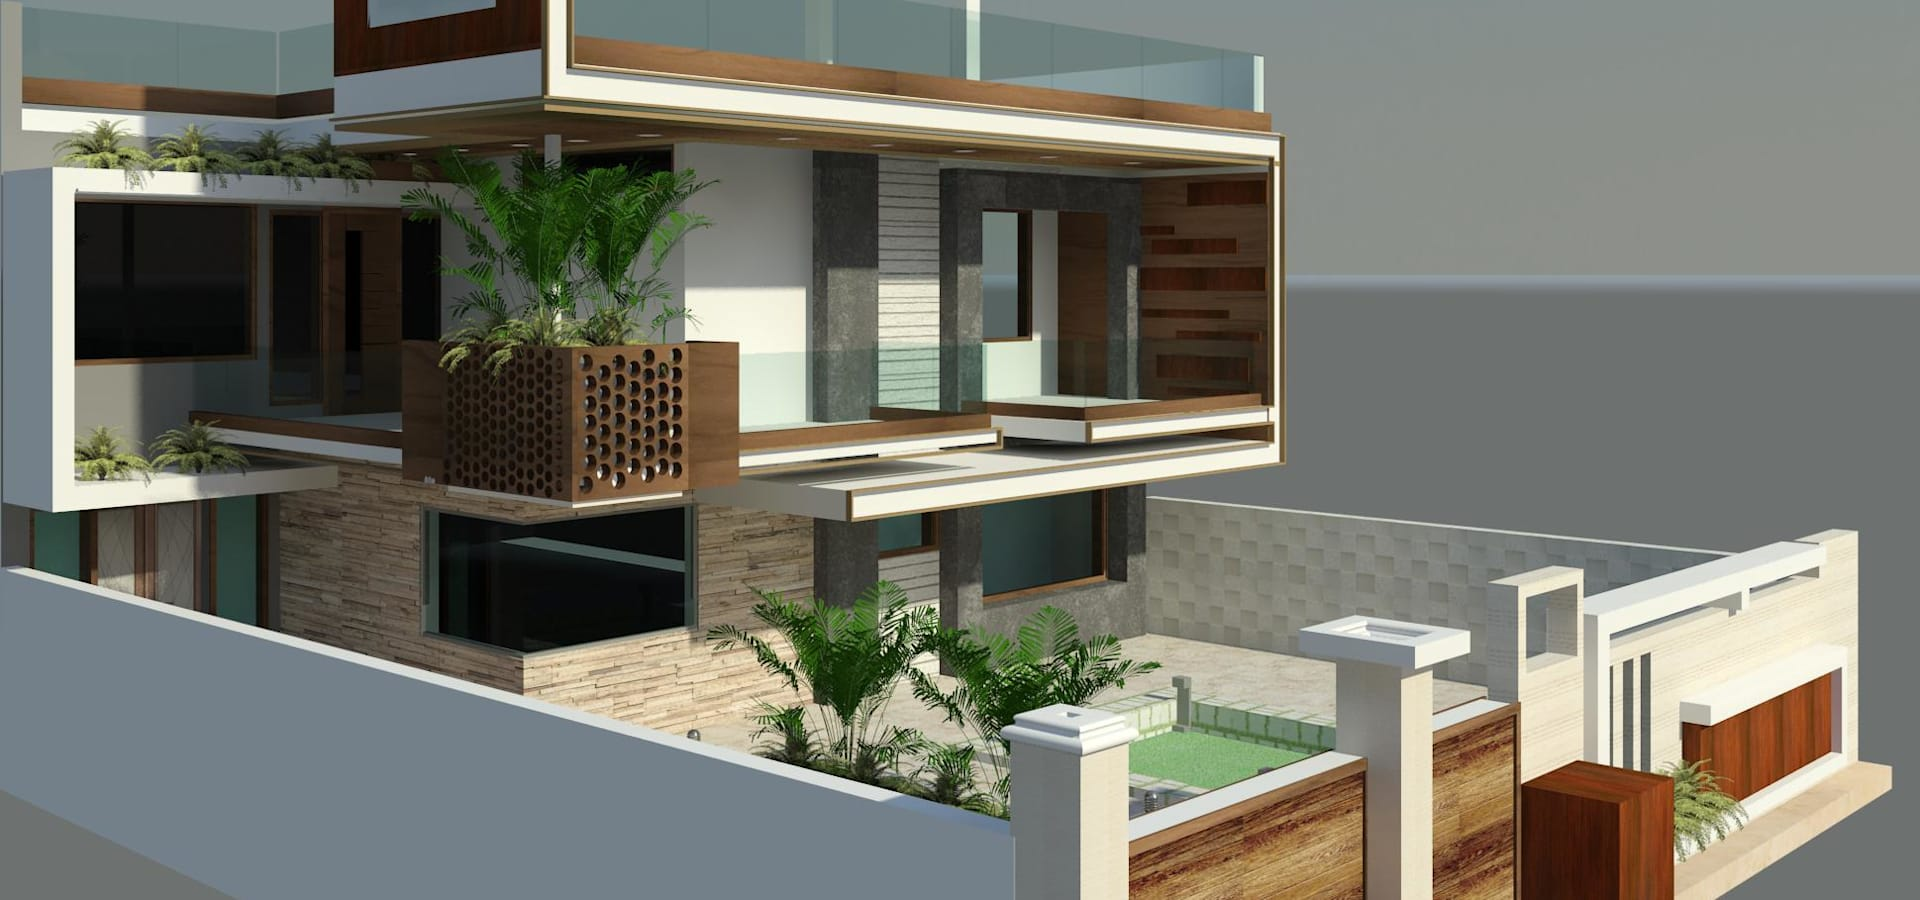 EdgeHomes Architects